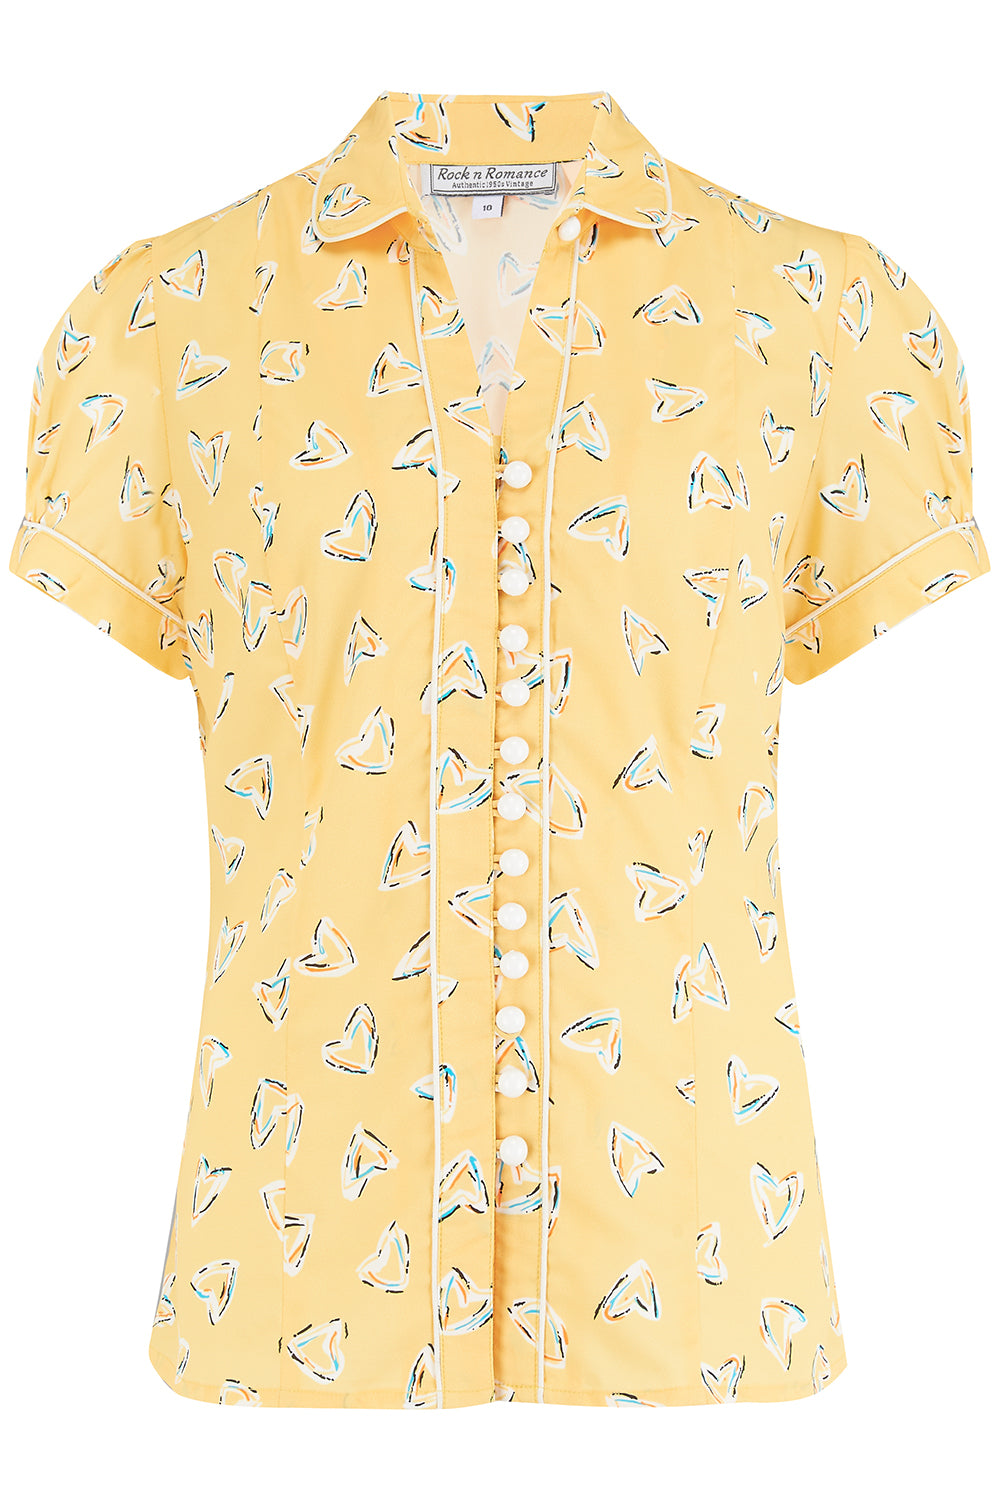 "Rock n Romance **Sample Sale** ""Margot"" Blouse in Yellow Abstract Heart Print, Perfect 1950s Style - RocknRomance Clothing"